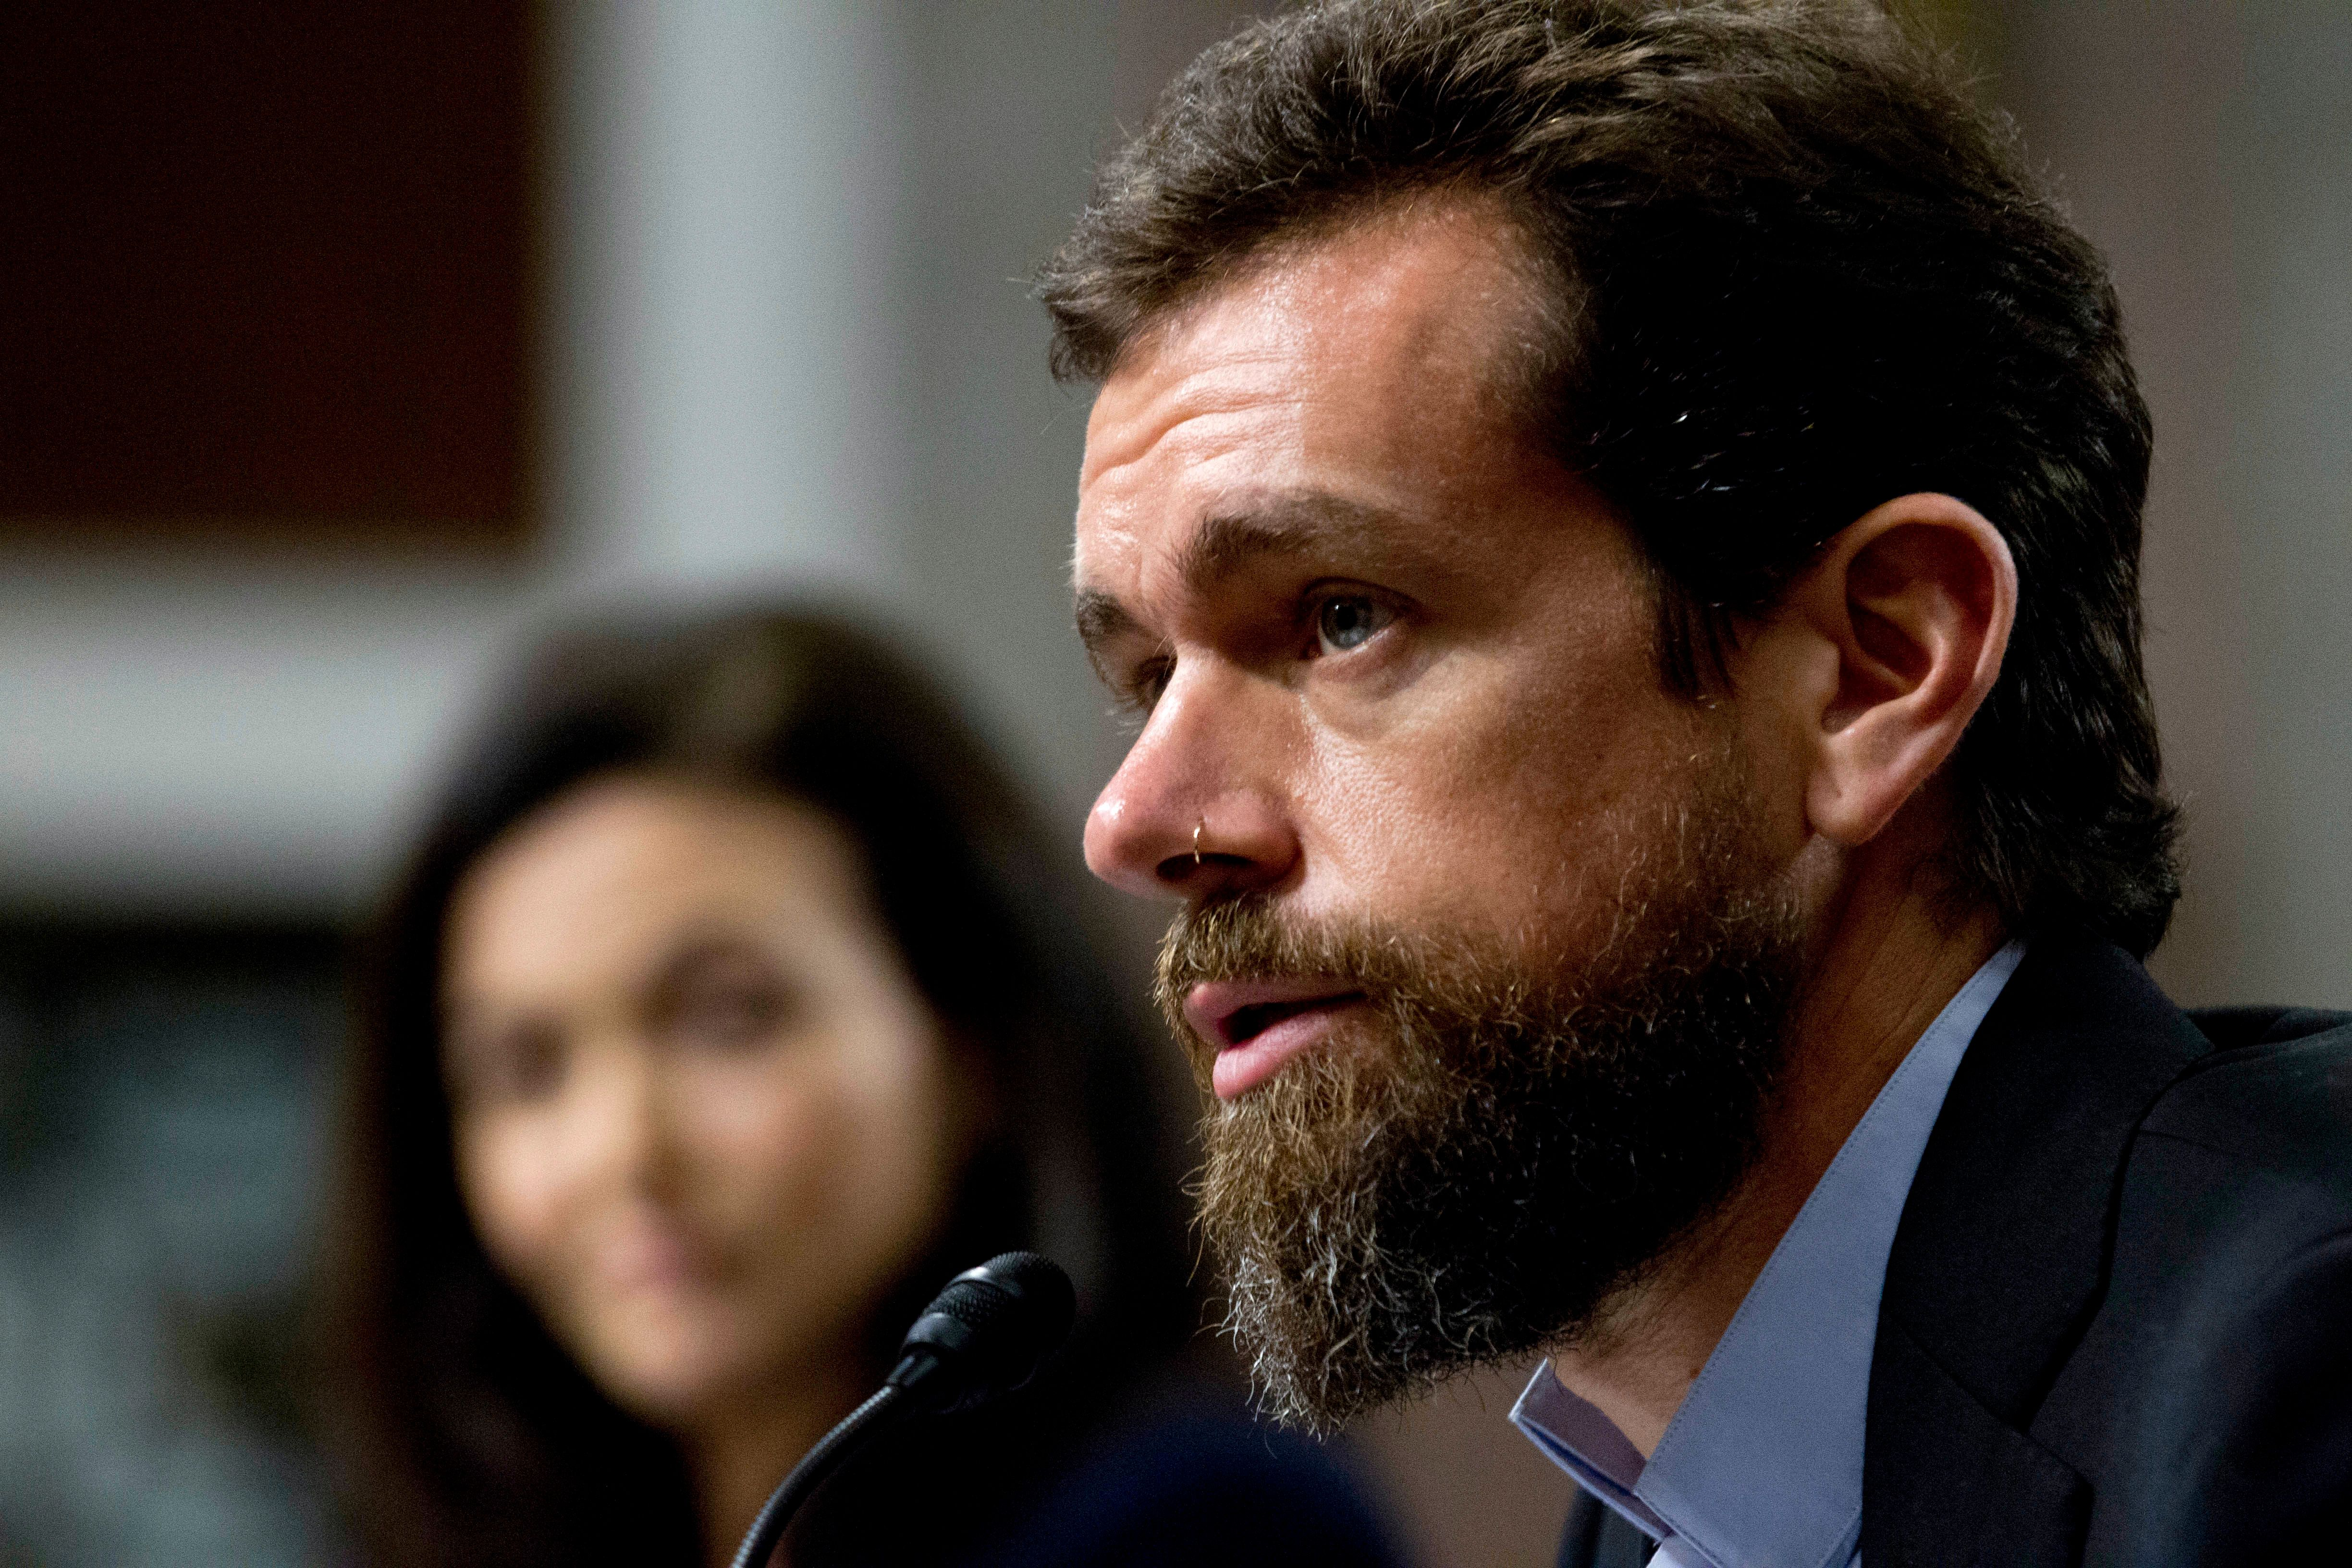 Jack Dorsey, the CEO of Twitter, was a guest on March 12 on the podcast of Ben Greenfield, who promotes the debunked the